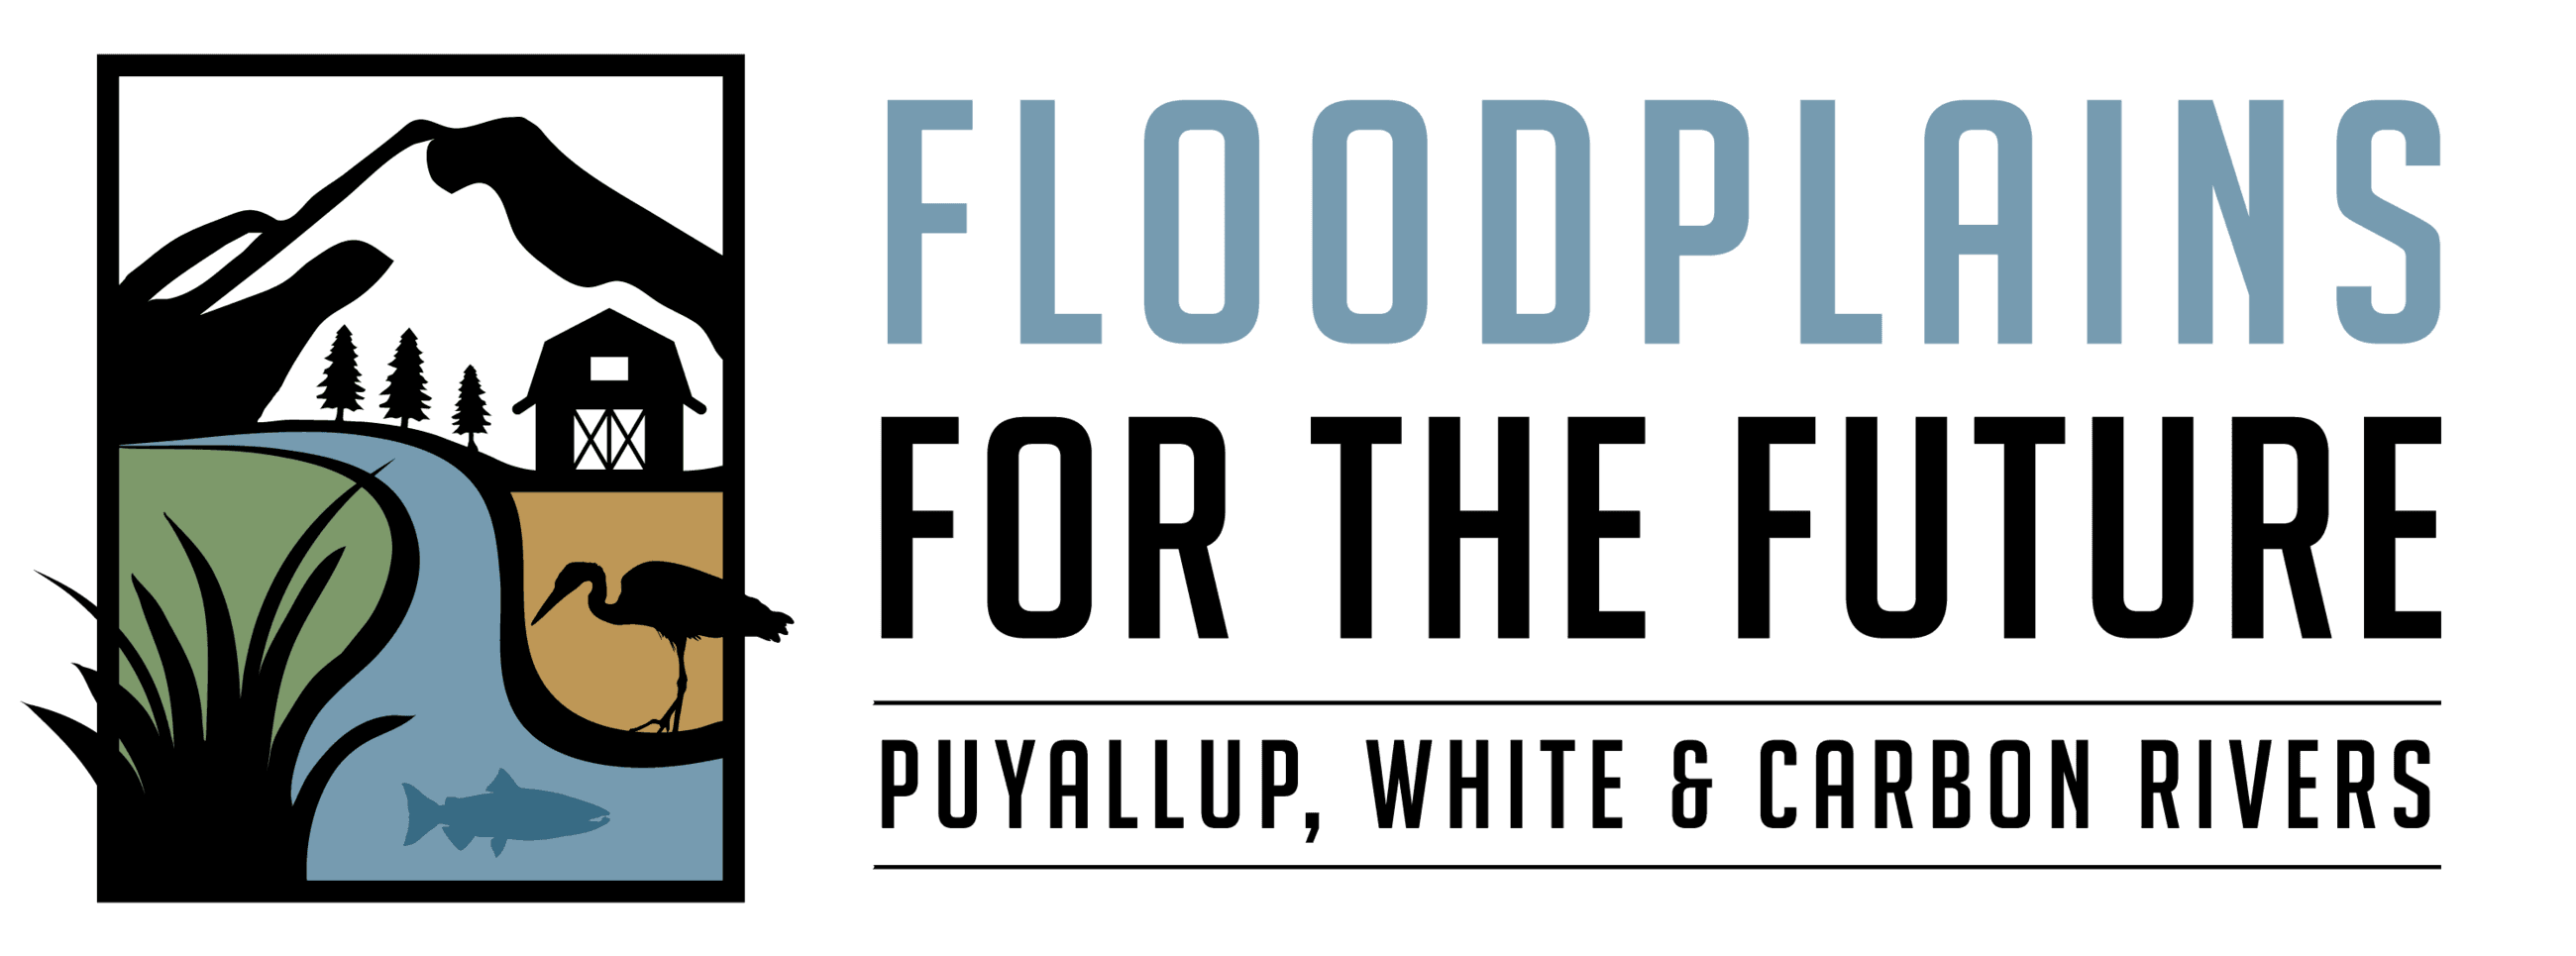 FloodPlainFuture_Horizontal